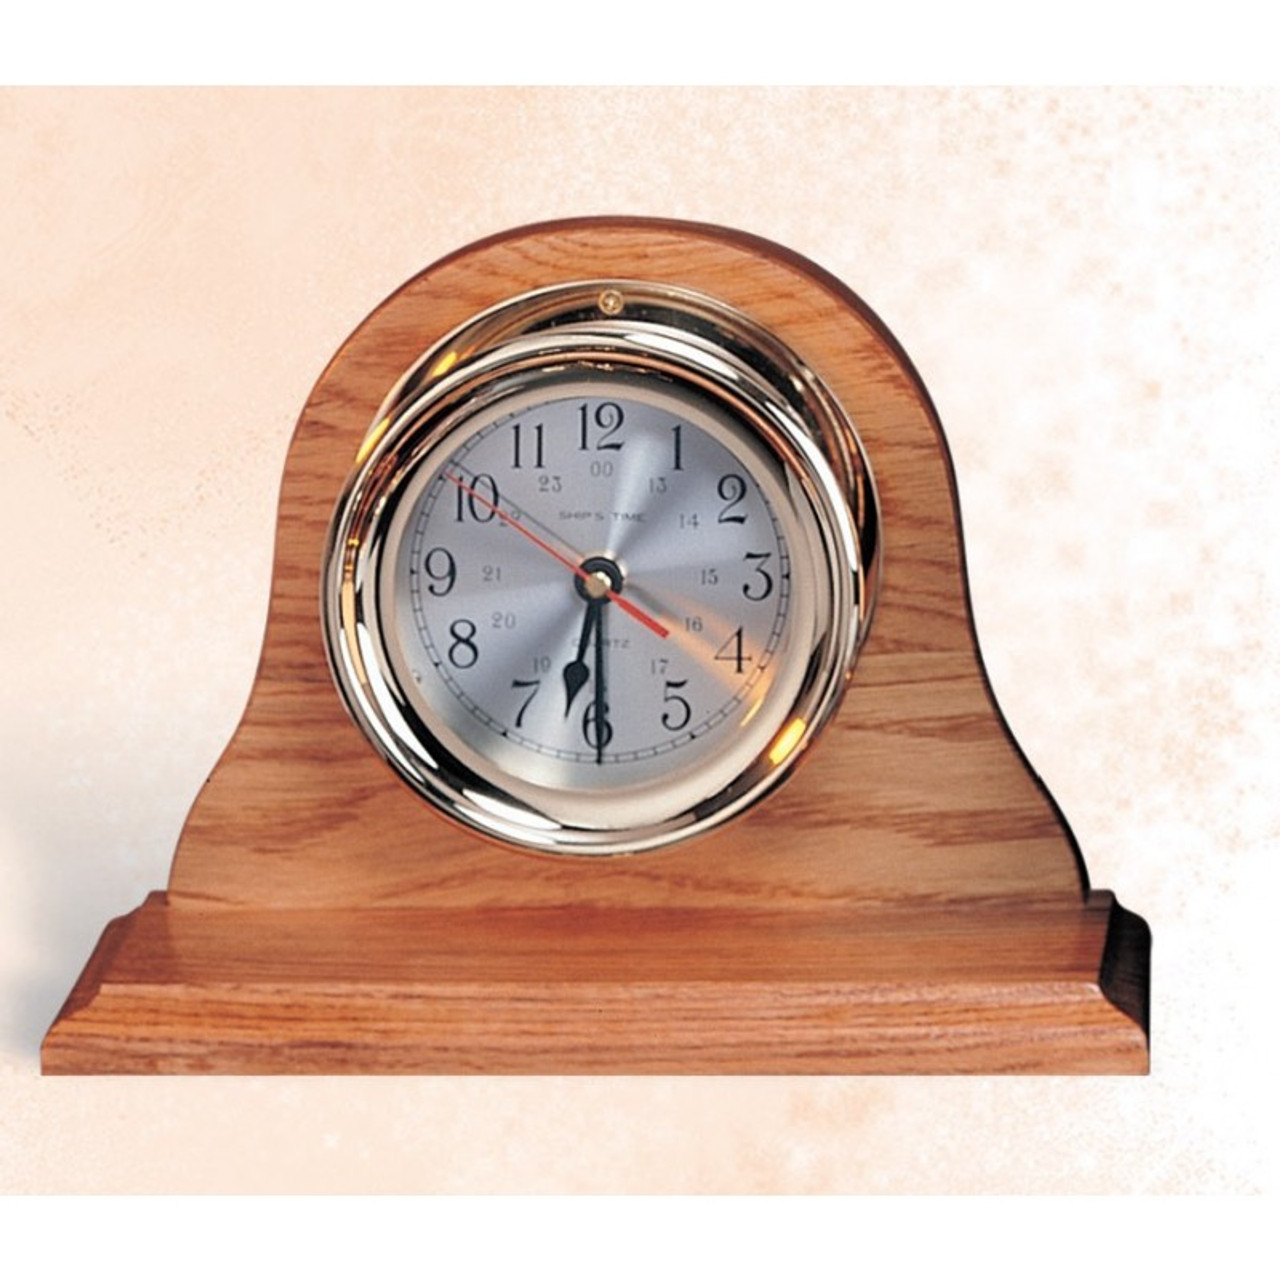 "(TK-204C) 7.5"" Brass Clock with Wooden Base"